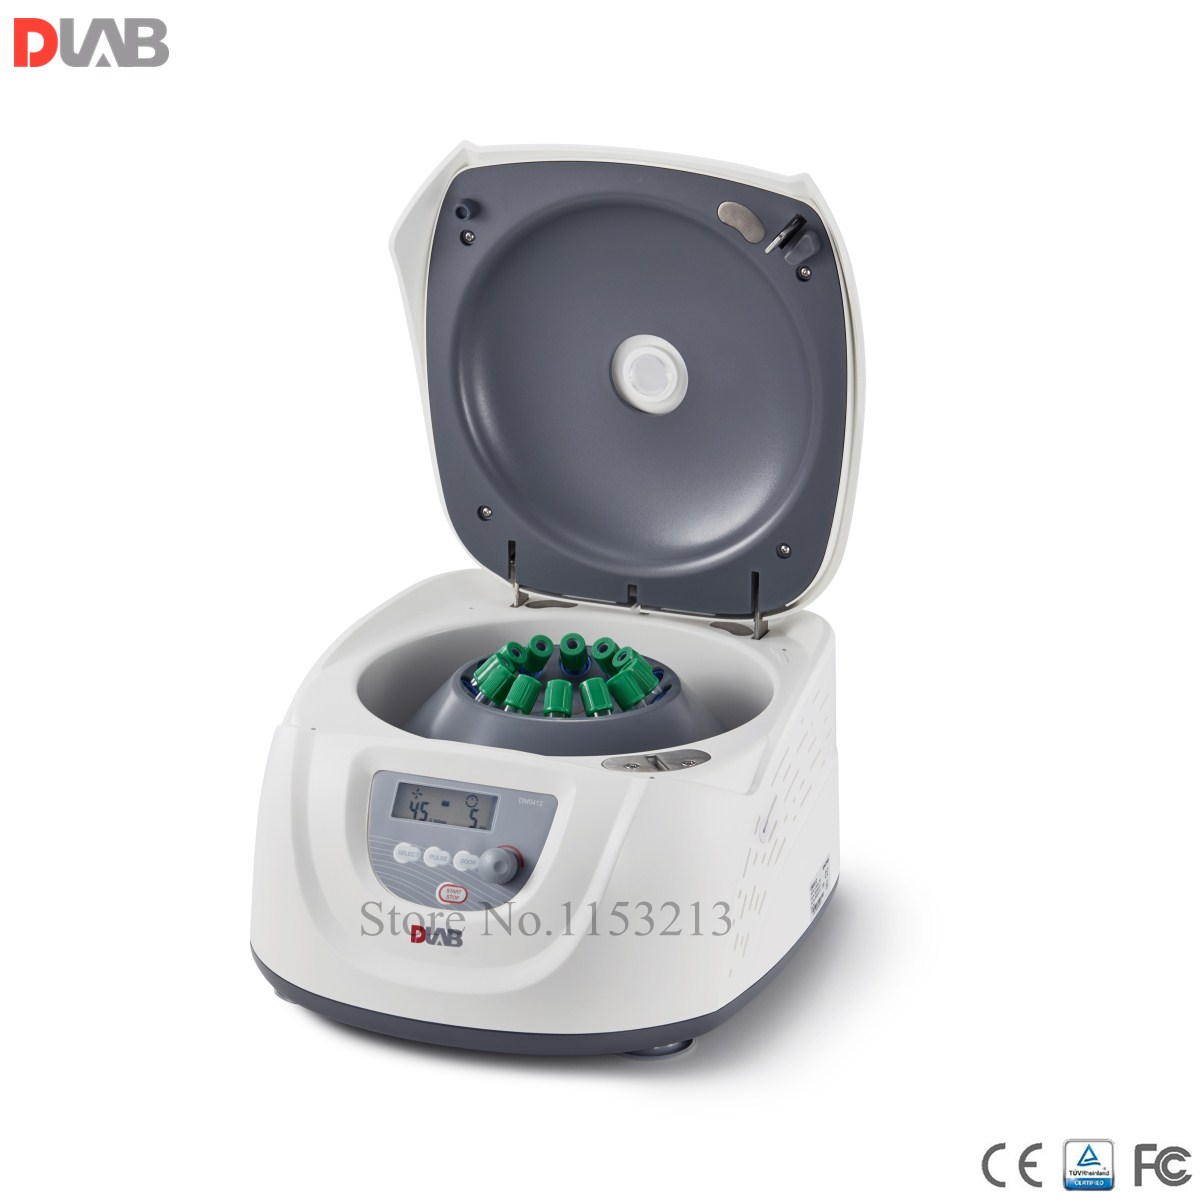 Clinical Centrifuge 15ml 8 or 10ml 7ml 5ml 12 Dlab DM0412 Slow Speed Centrifuge 300 4500rpm